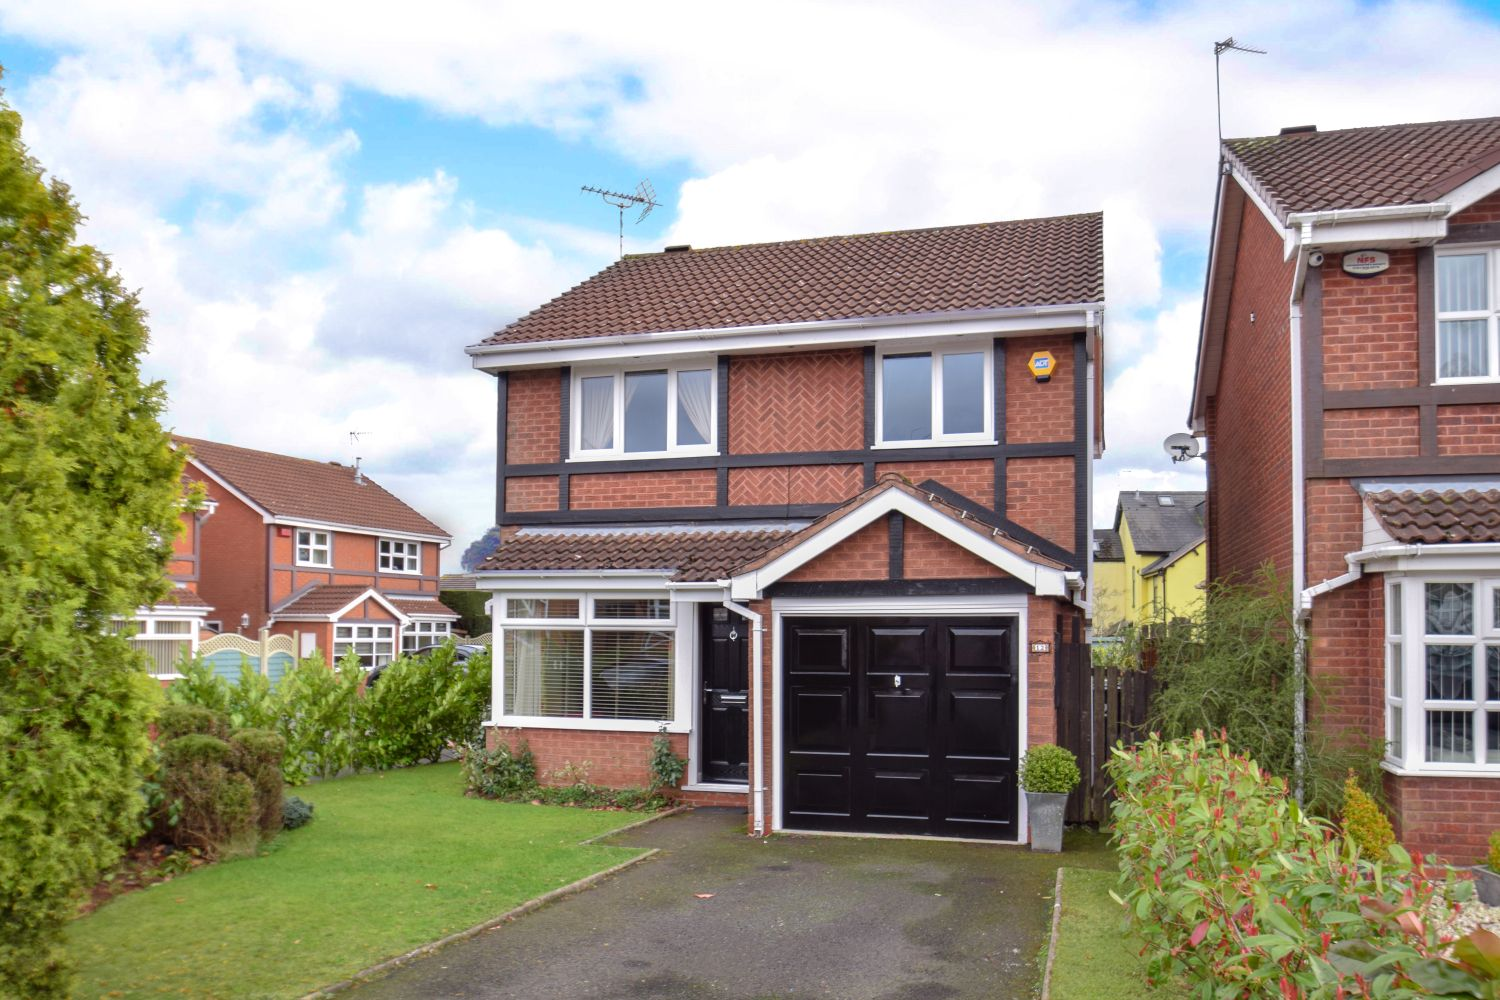 3 bed detached for sale in Foxes Close, Blackwell, B60  - Property Image 1